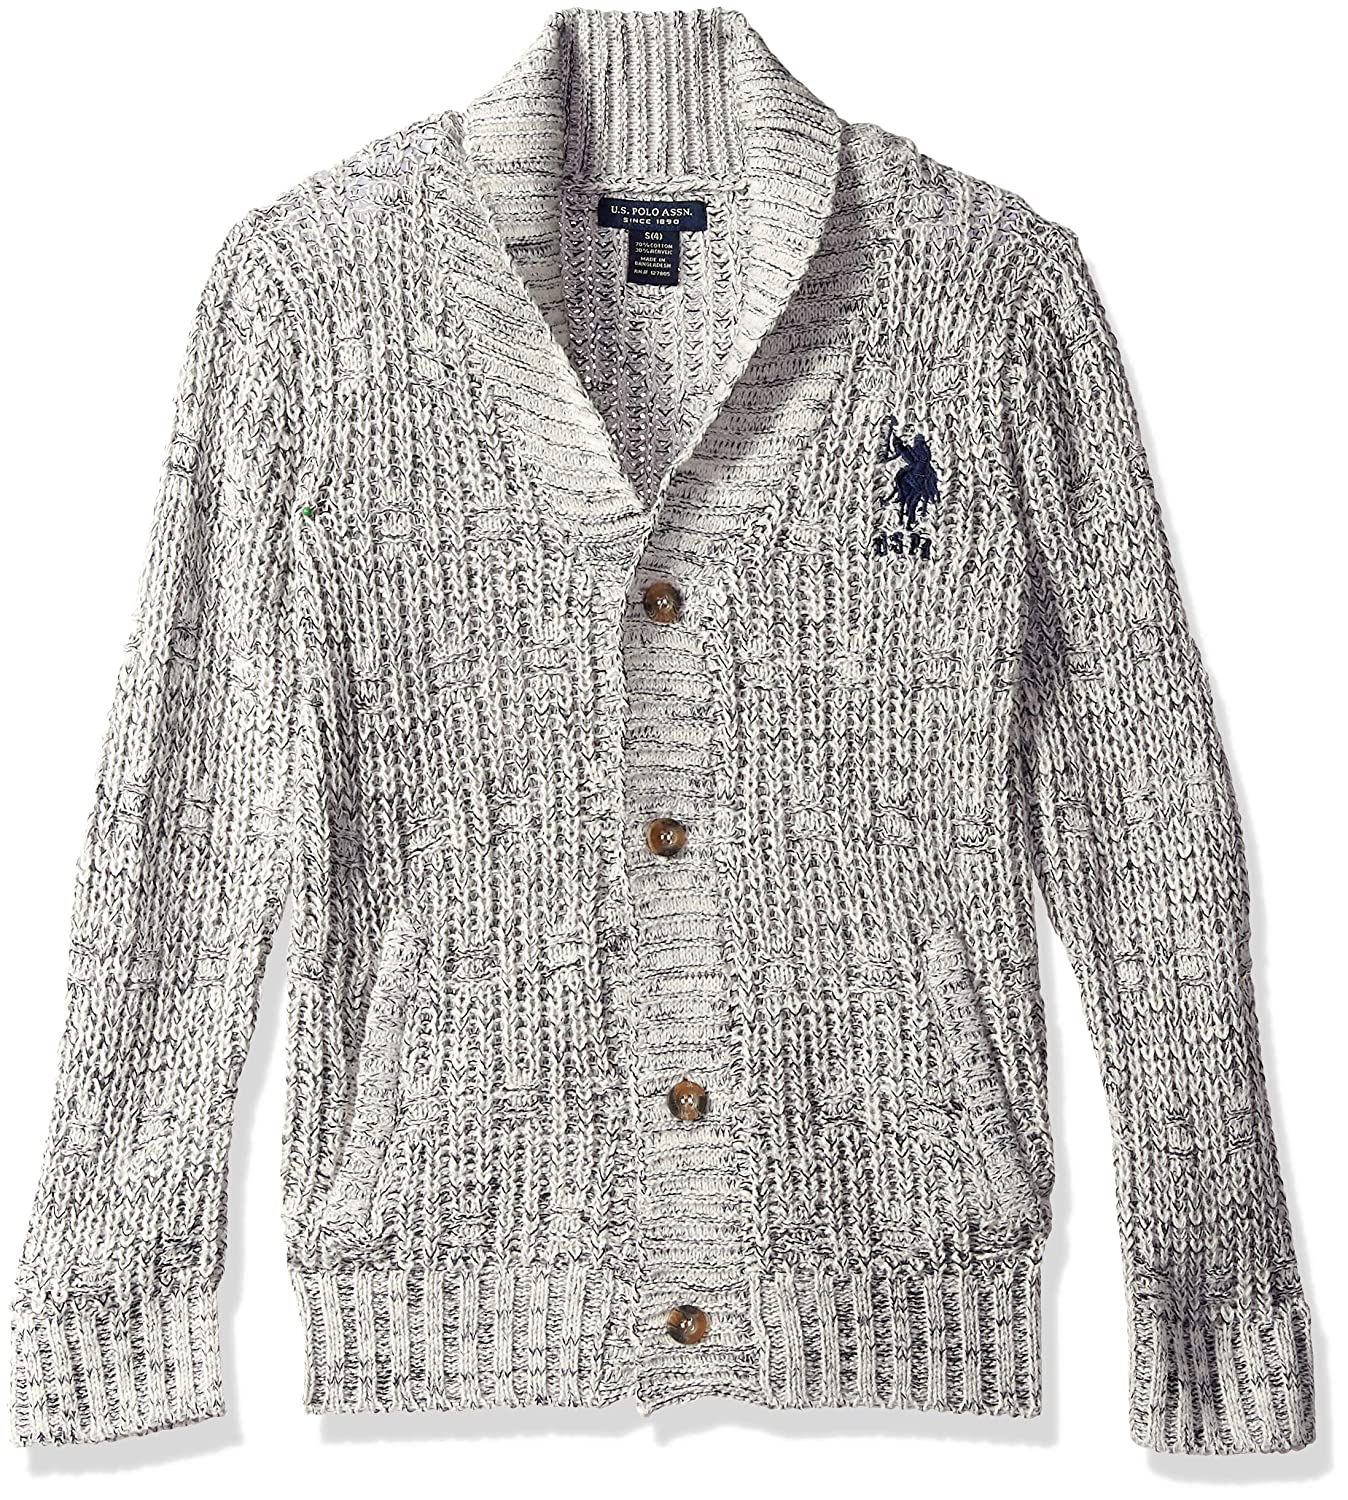 U.S. Polo Assn. Boys' Cardigan Sweater,